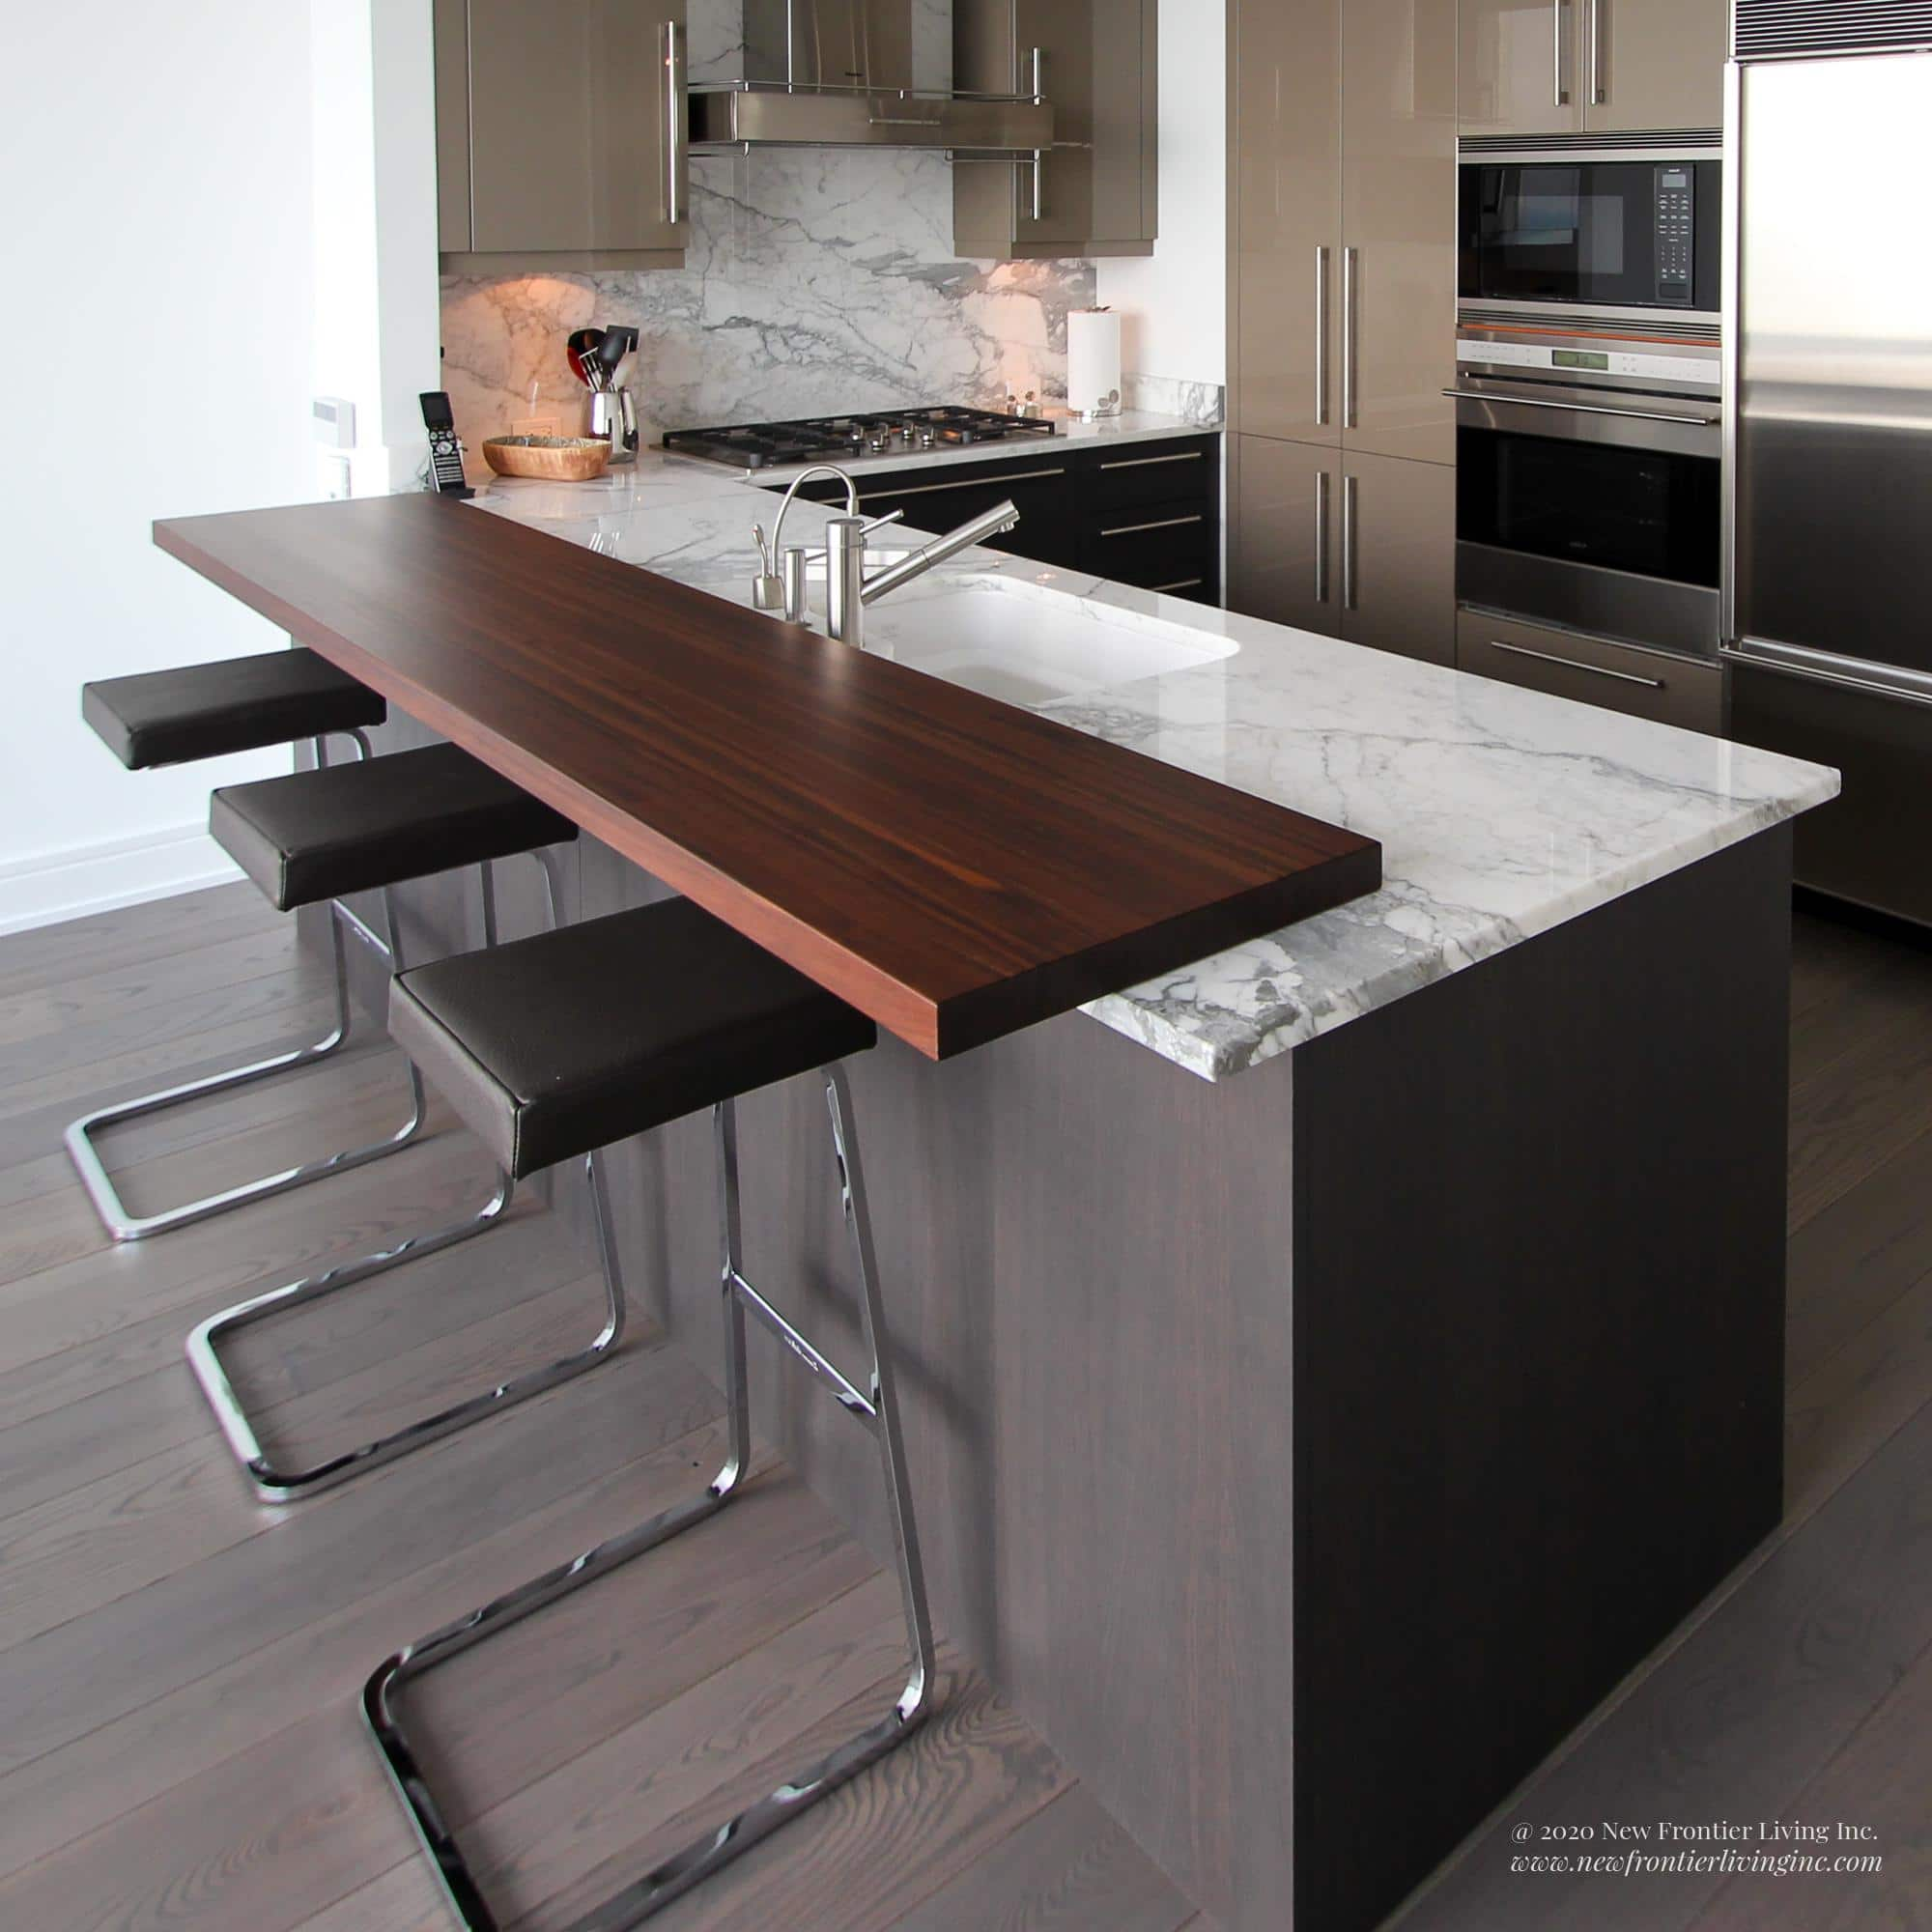 Dark gray kitchen with white granite countertop and brown extended wooden ledge